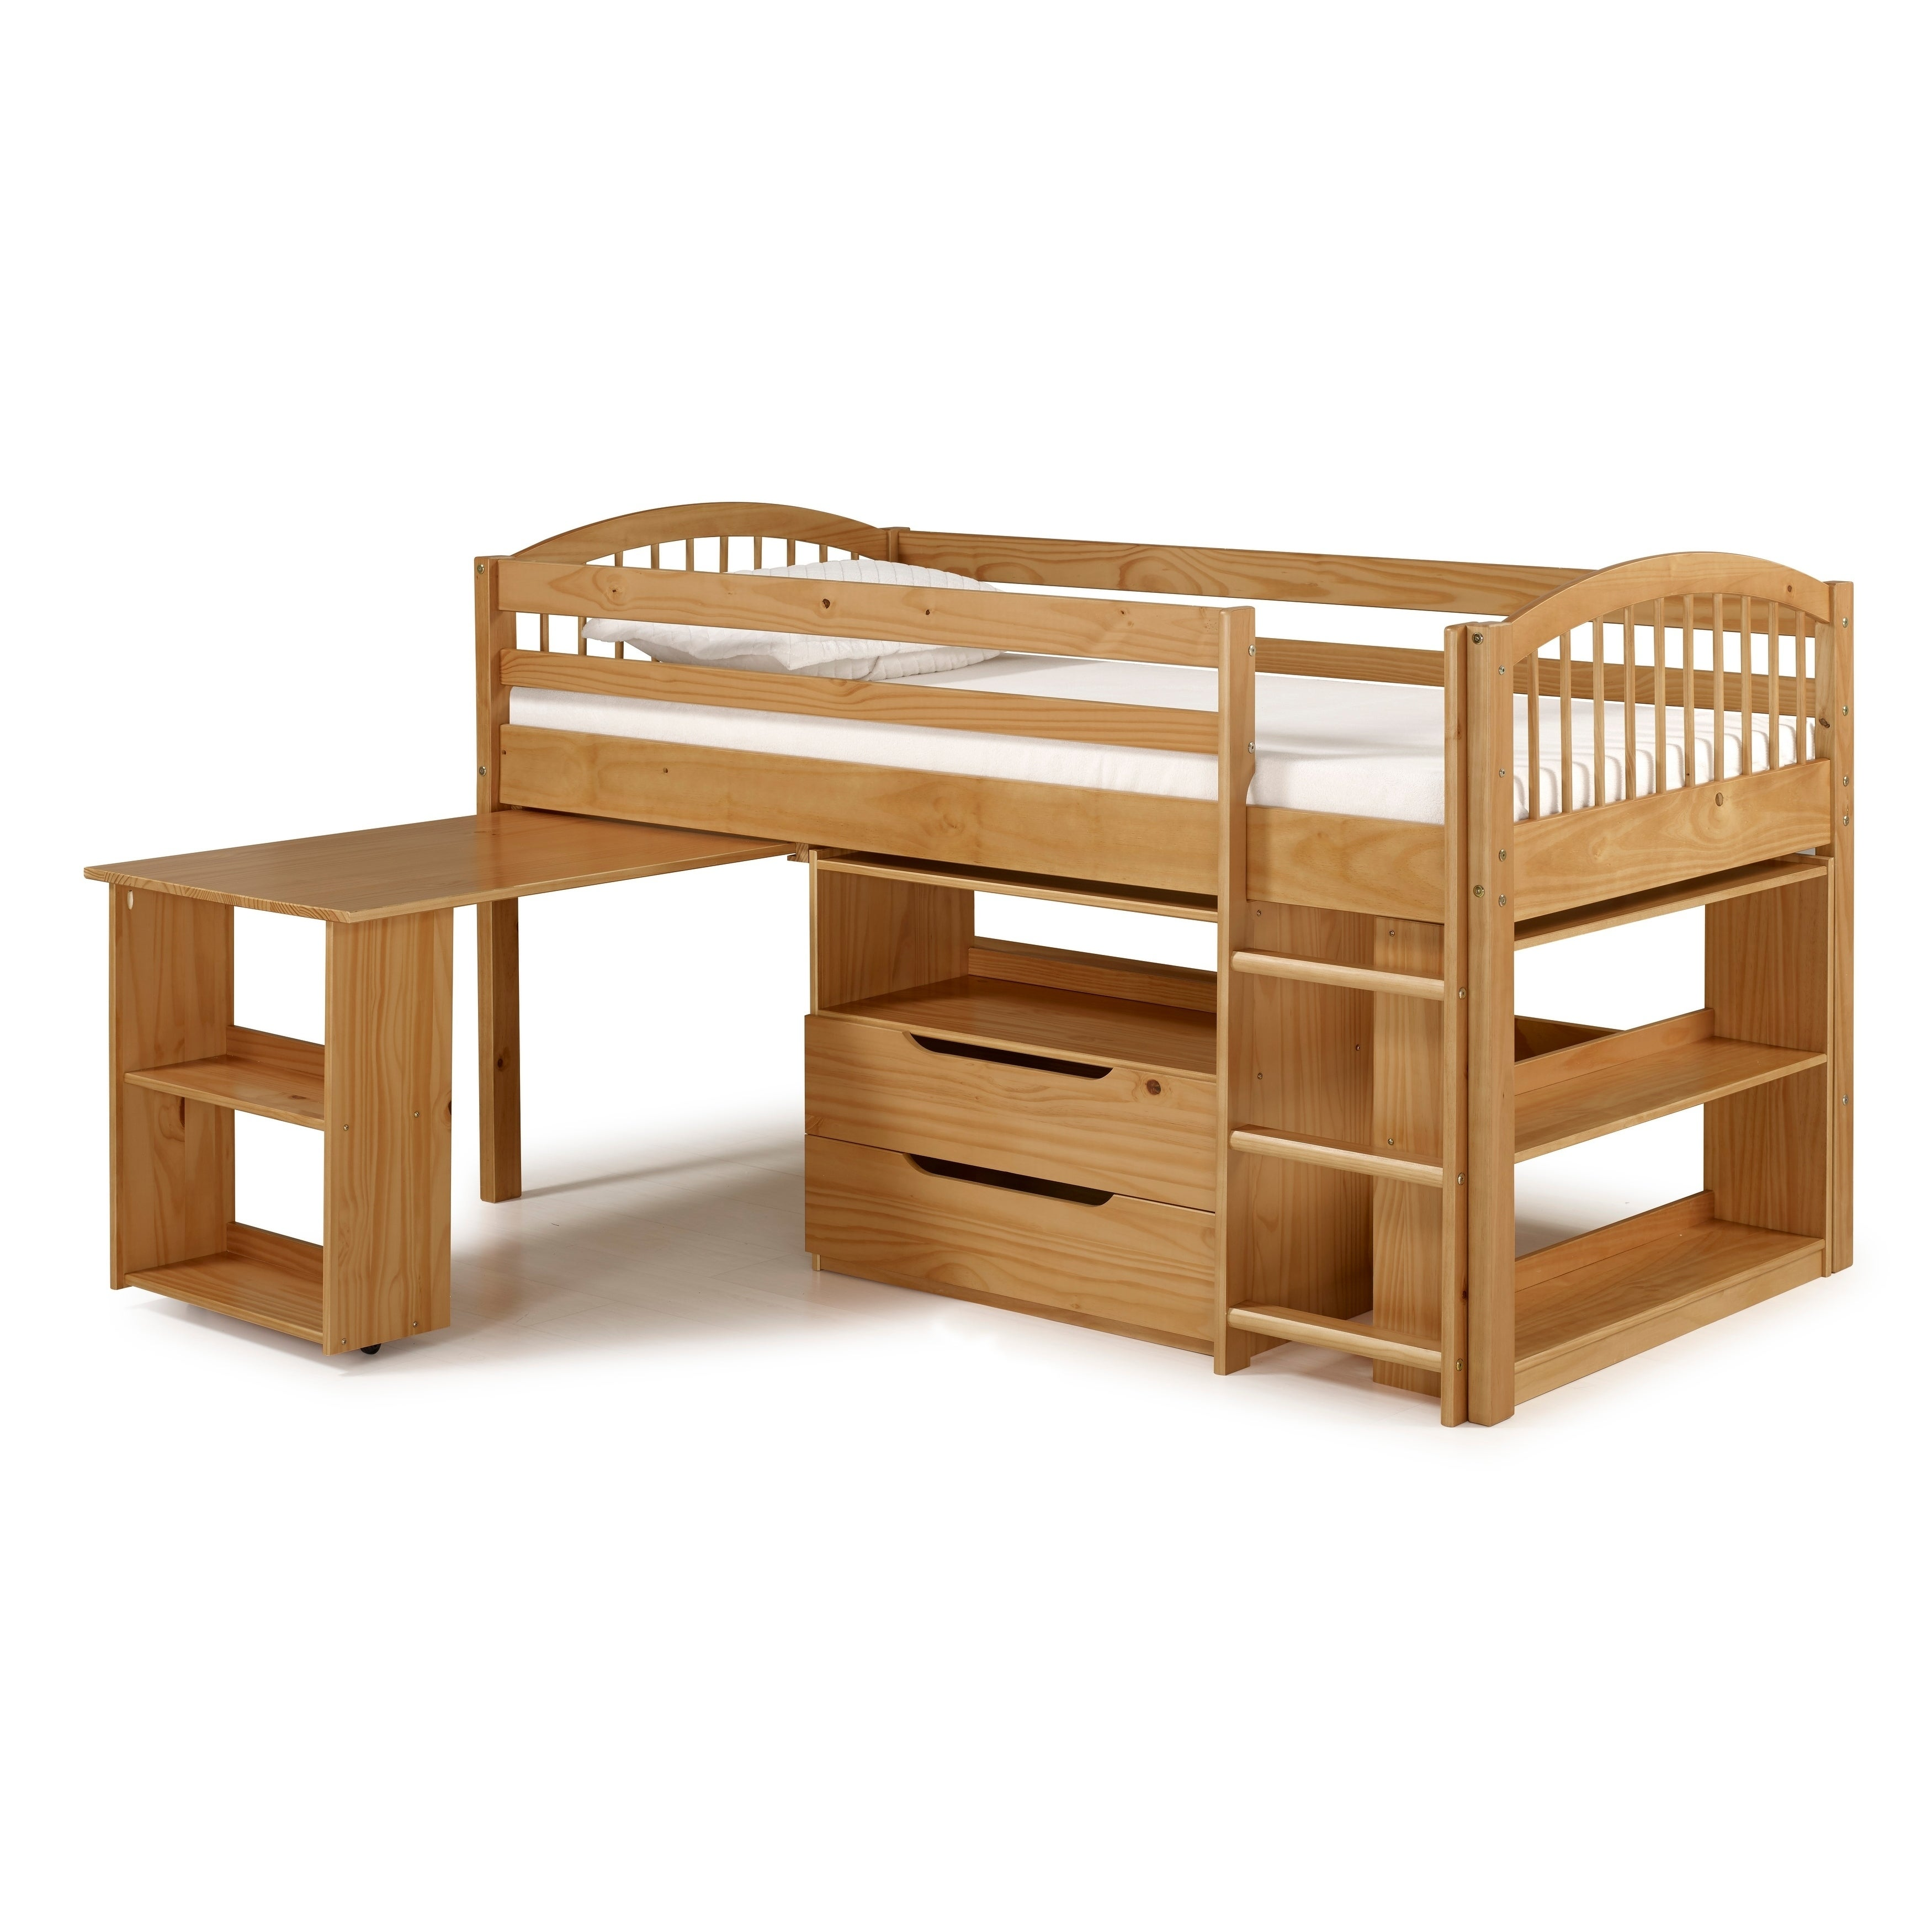 Addison Junior Low Loft Bed With Storage Drawers, Desk And